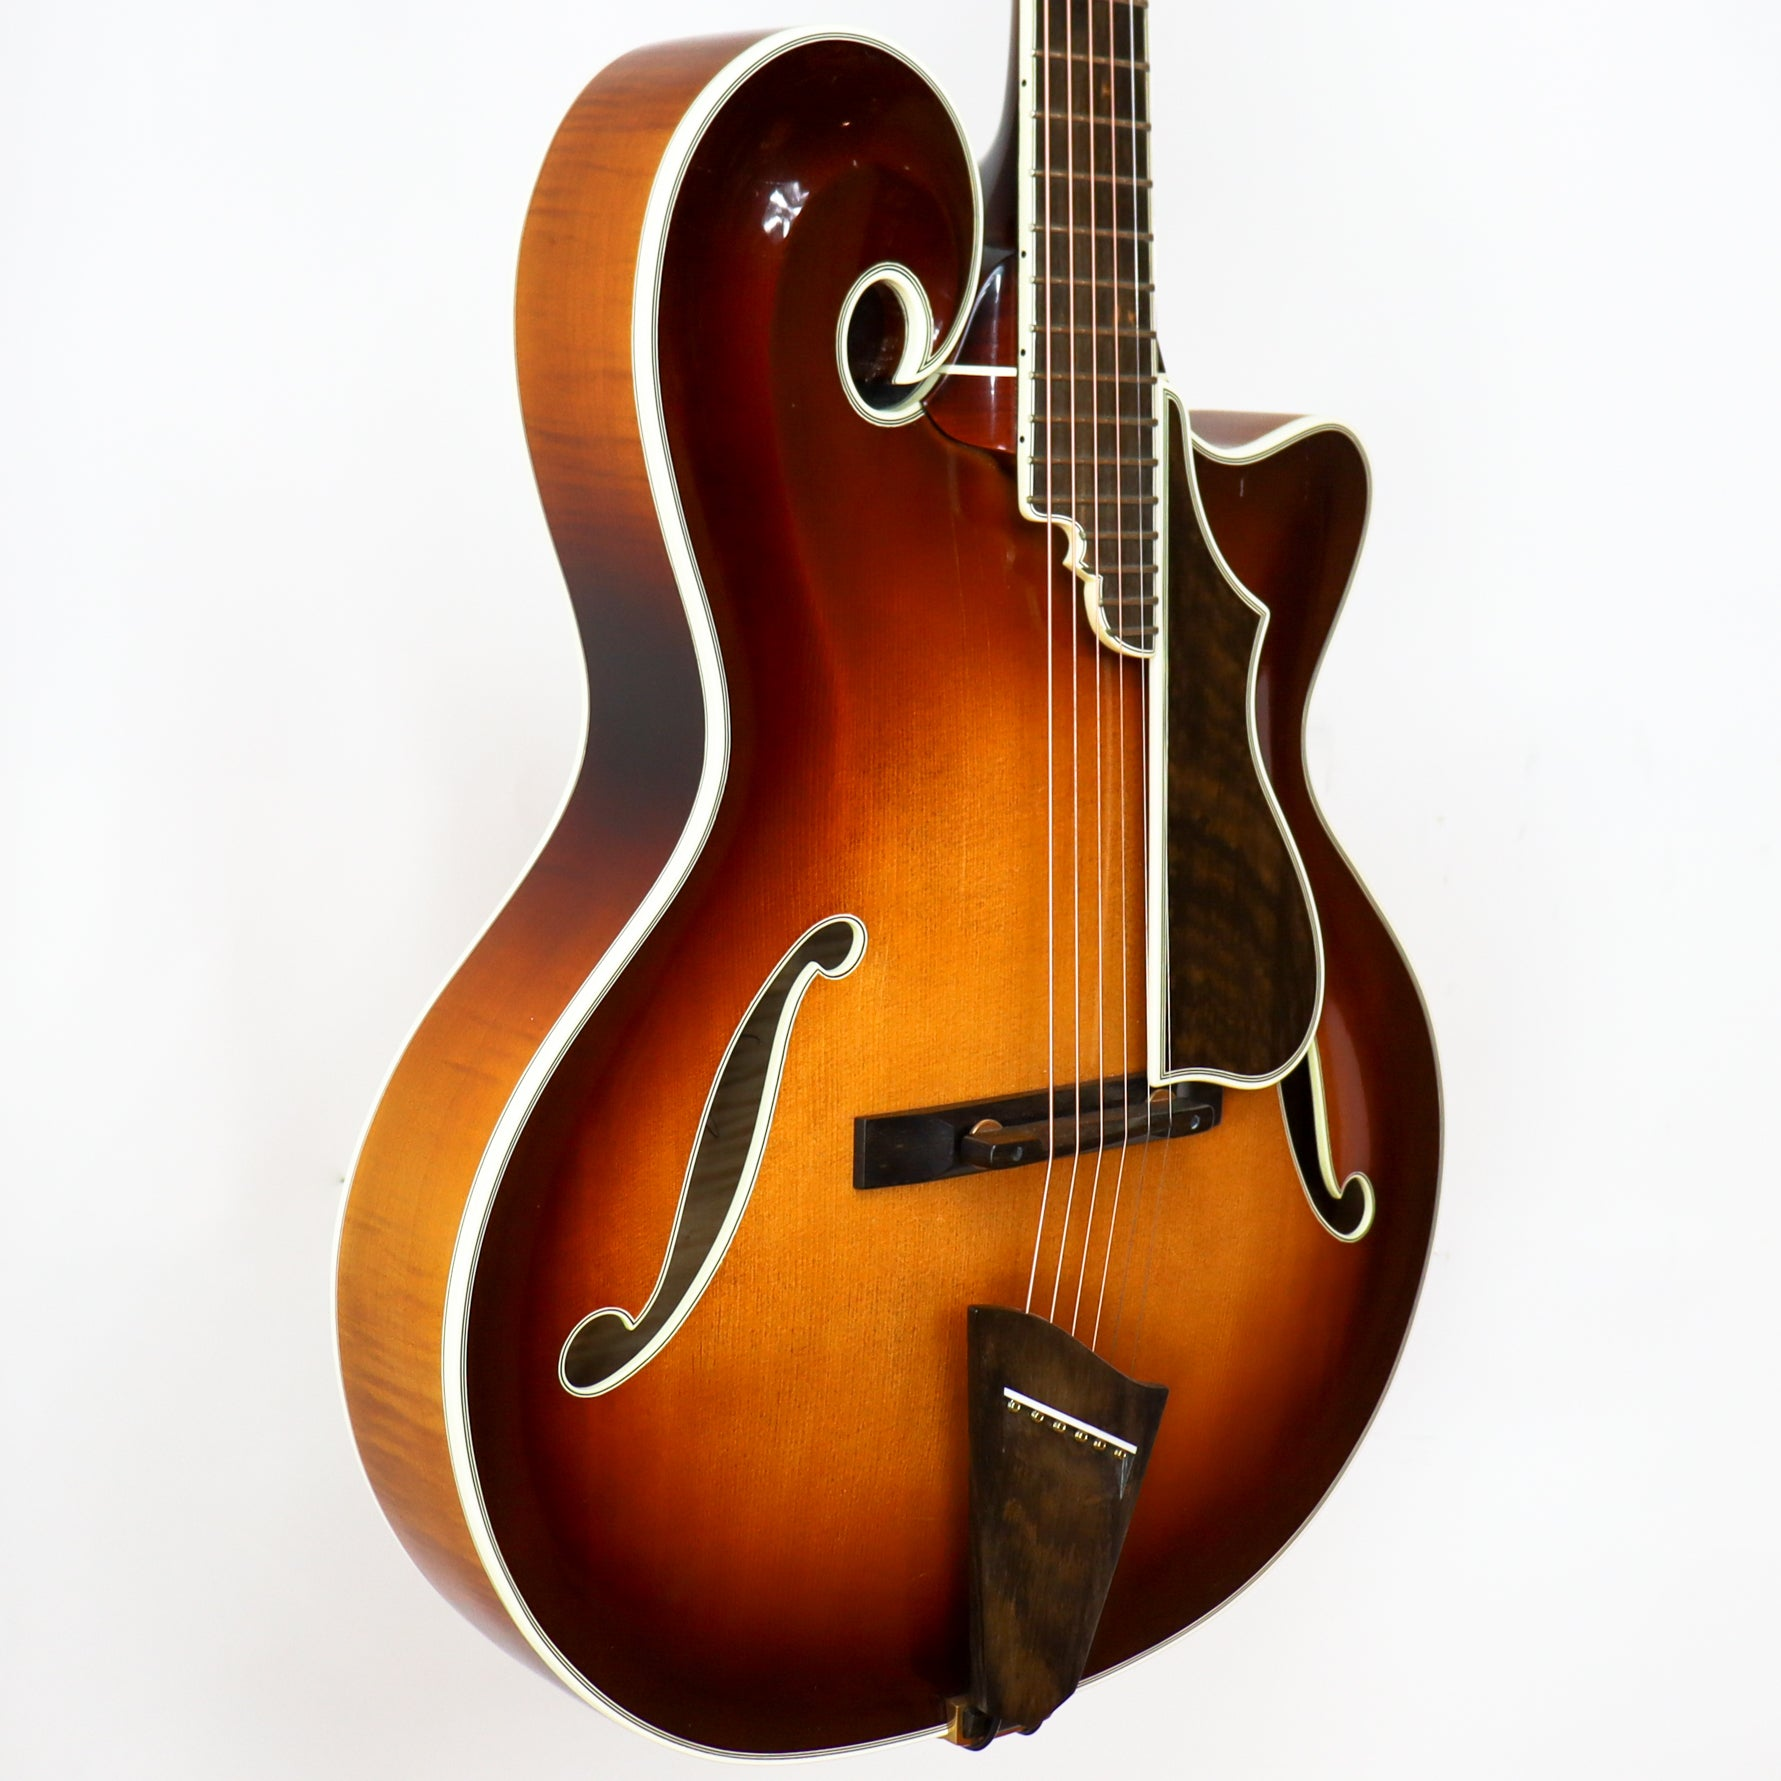 Monteleone 1994 Grand Artist #147 (First One Ever Built)